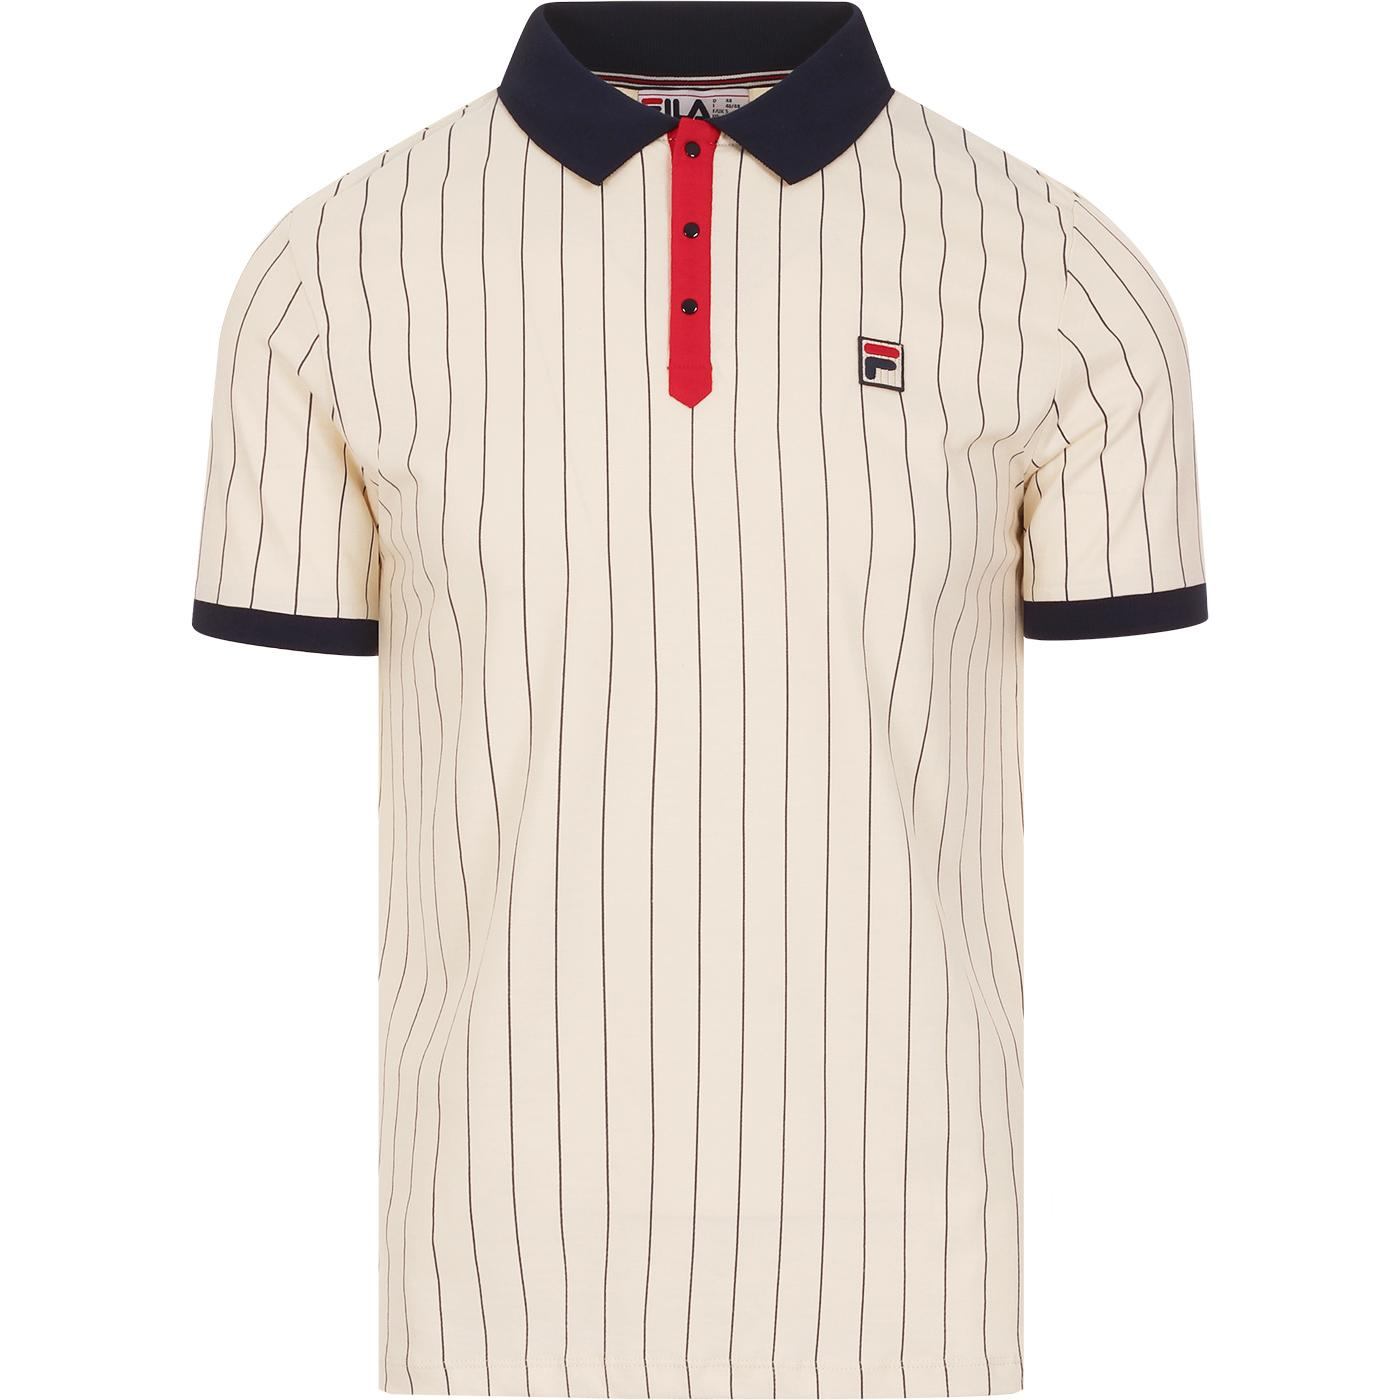 BB1 FILA VINTAGE Retro Borg Tennis Polo Turtledove